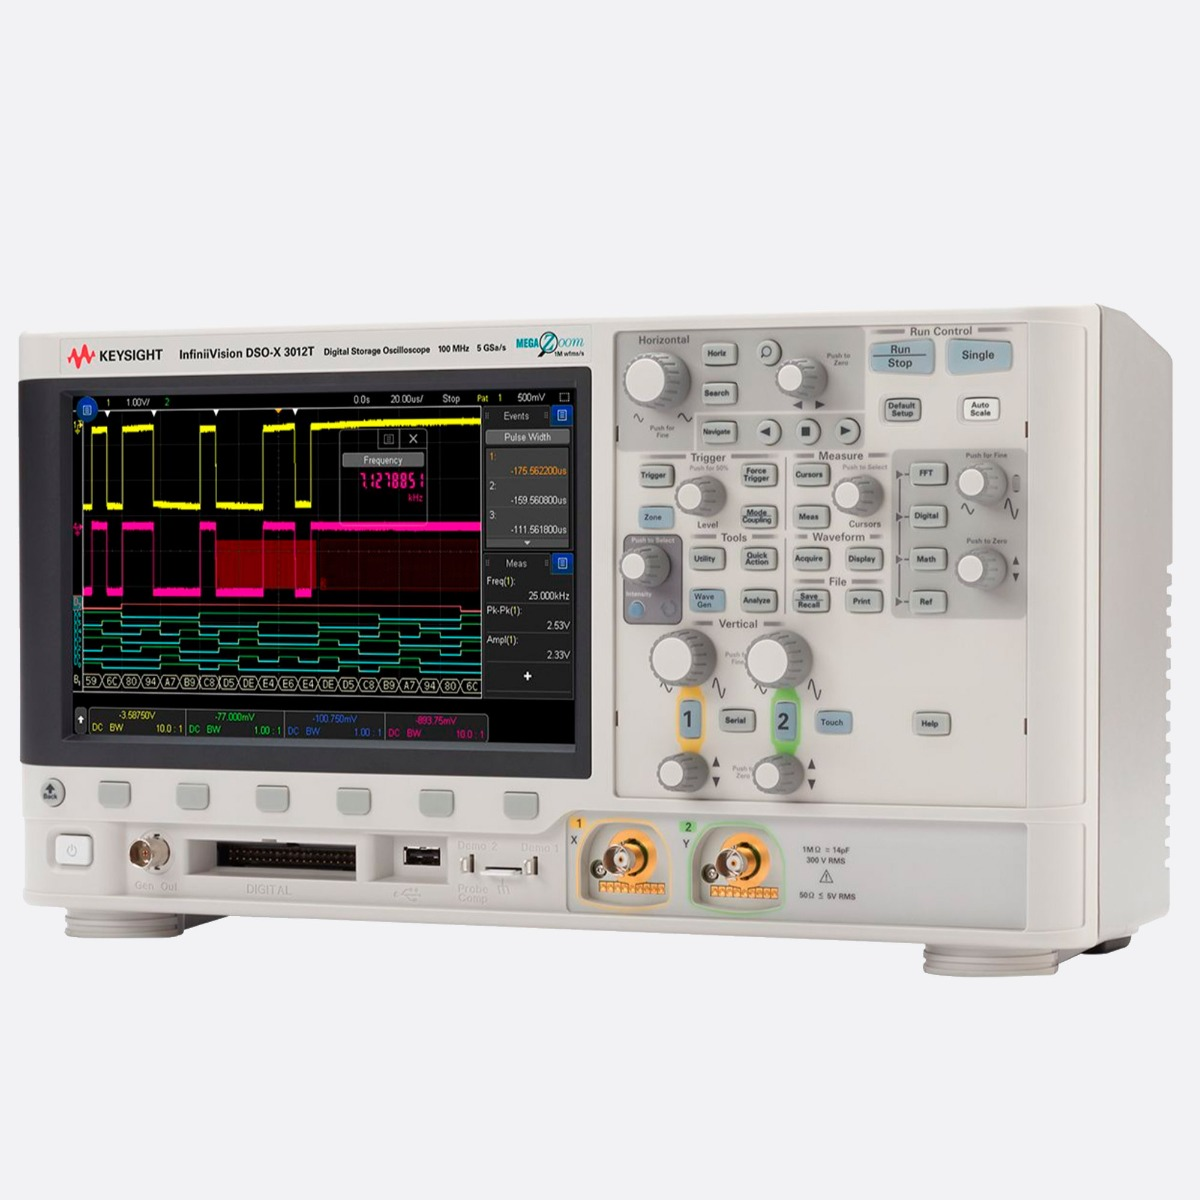 Keysight_DSOX3012T_Front-Right_Ccontrols